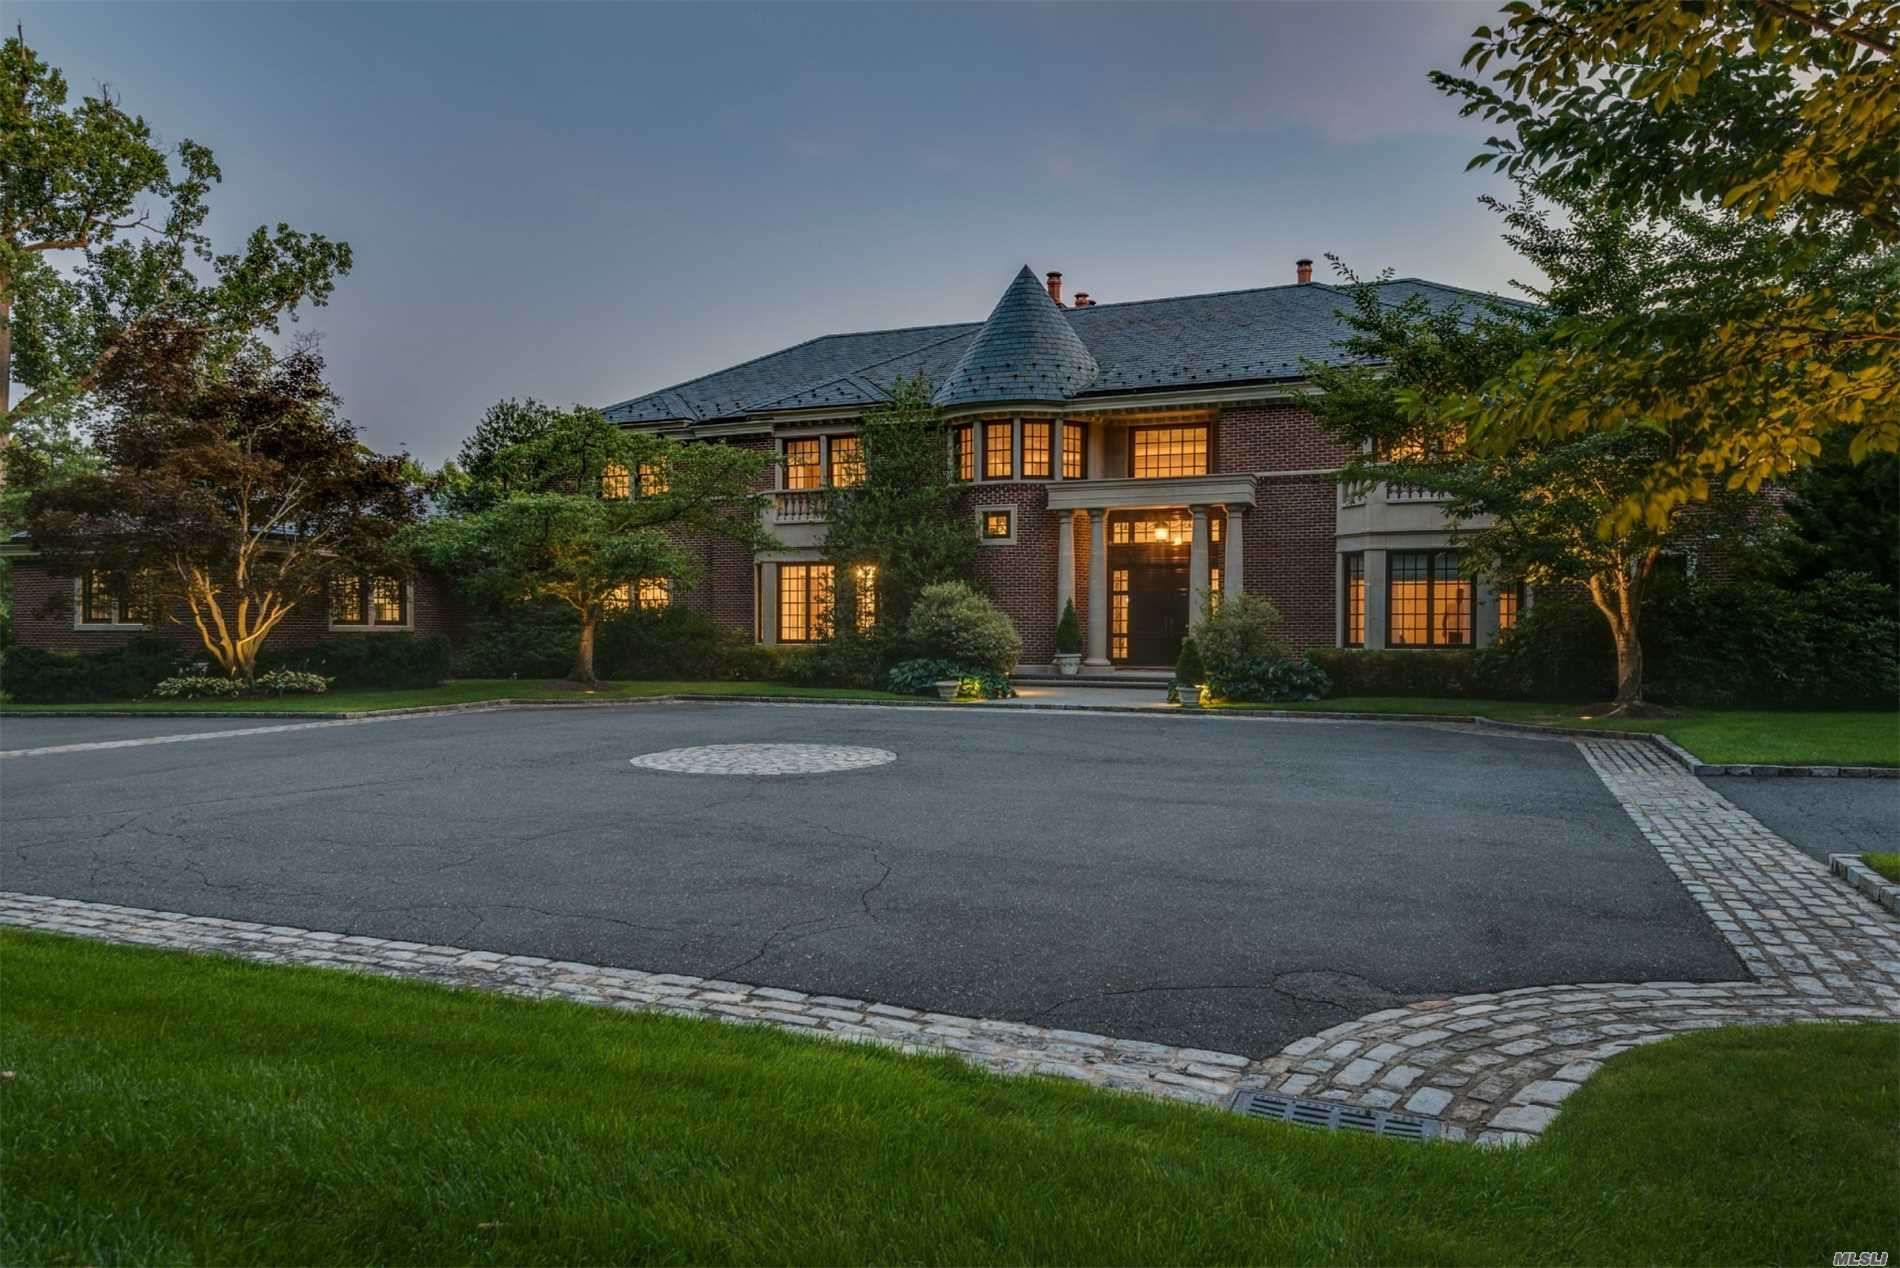 Old Westbury. Breathtaking Custom Built Brick Colonial Sits Privately On 4 Tranquil Acres On Cul-De-Sac. This Stunning 7-Bedrooms, 7.555 Bath Home Is Ideal For Entertaining. It Includes Chef Kitchen, Intricate Work Throughout, Mahogany Library, Master Suite With His/Her Bathrooms & His/Her Dressing Rooms With Walk in Closets, in ground Pool and Tennis Court And Much More!